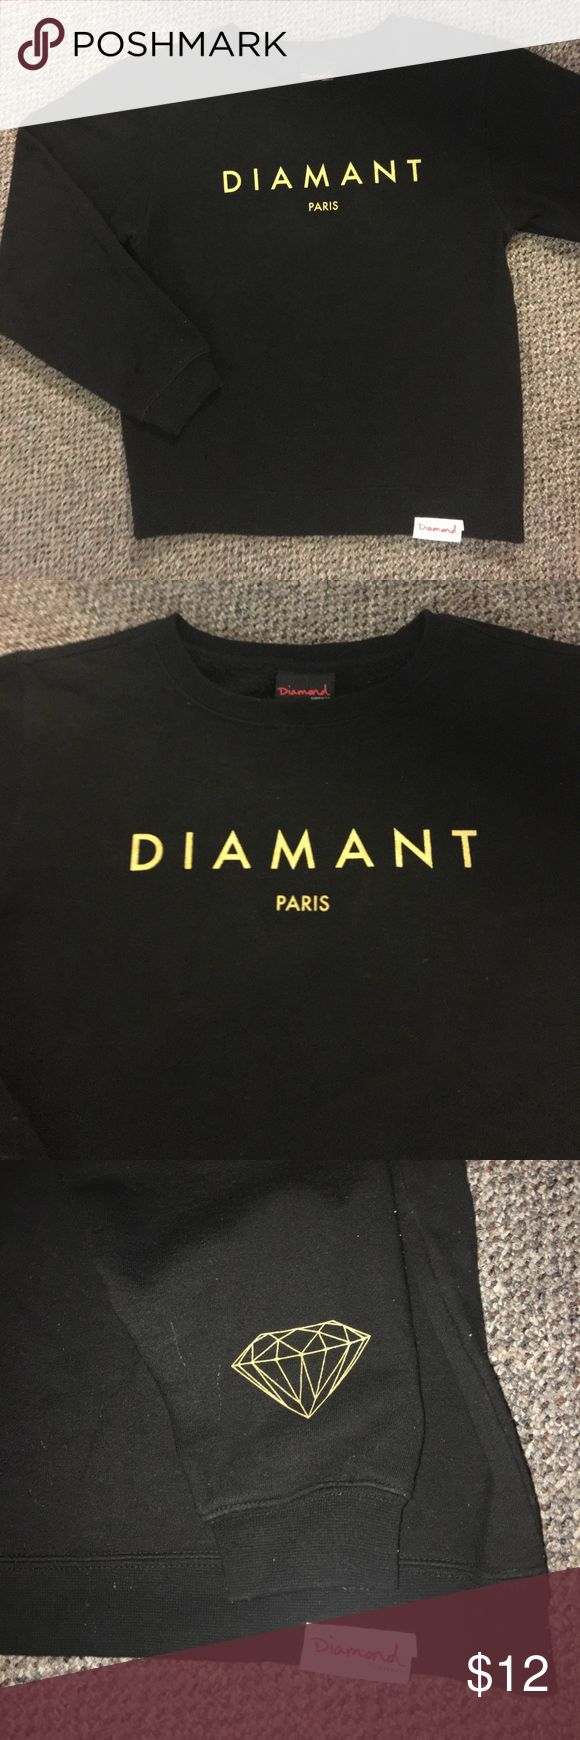 Diamond Supply Co. Sweatshirt Diamond Supply company Sweatshirt in black with gold text and diamond logo on left sleeve. Diamond Supply Co. Tops Sweatshirts & Hoodies